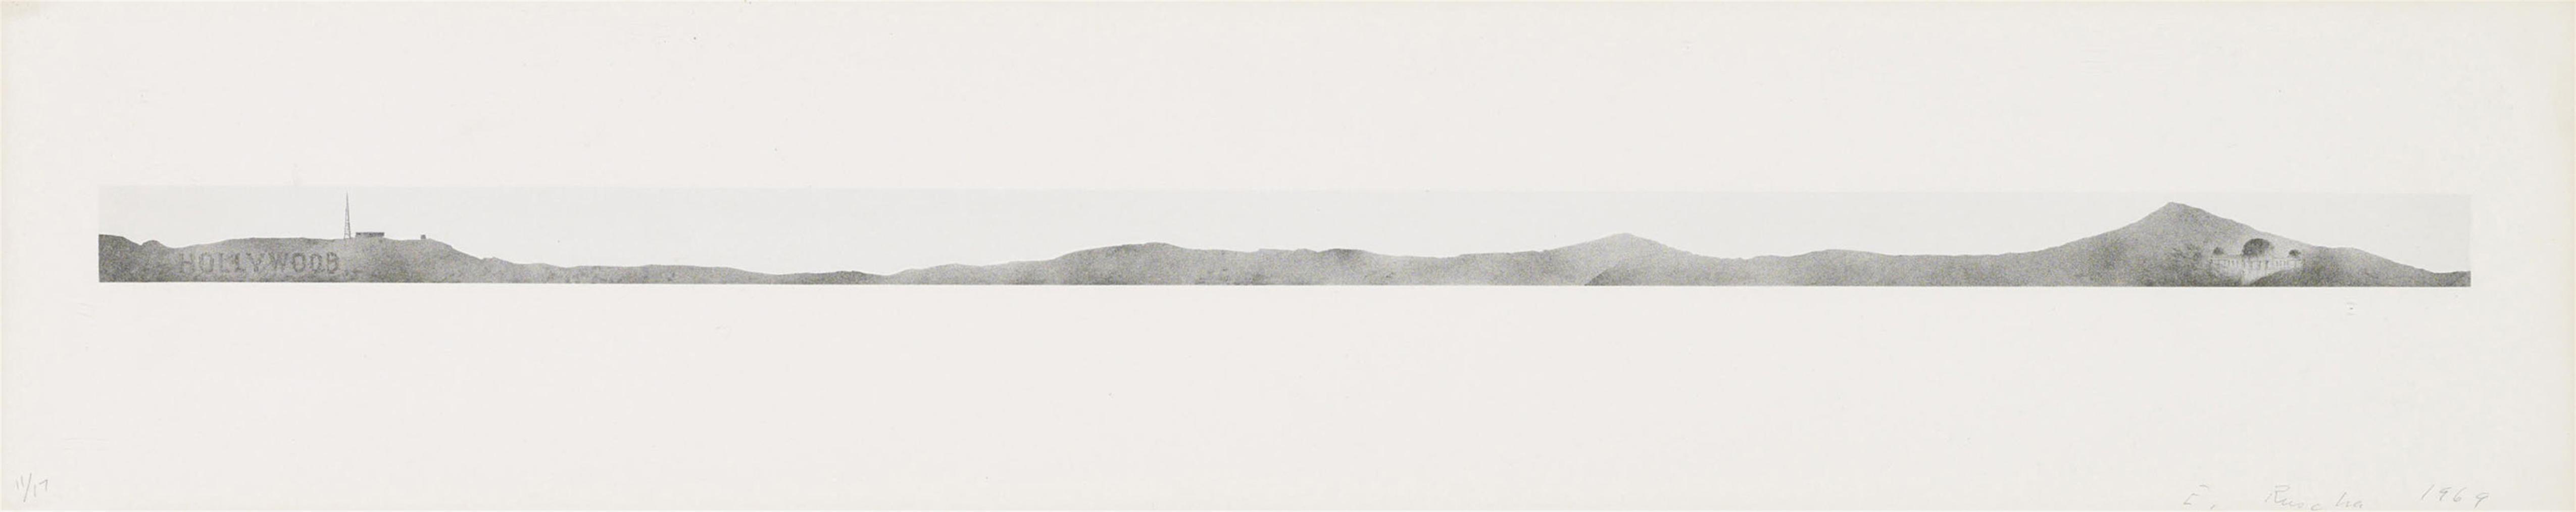 Ed Ruscha-Hollywood With Observatory-1969